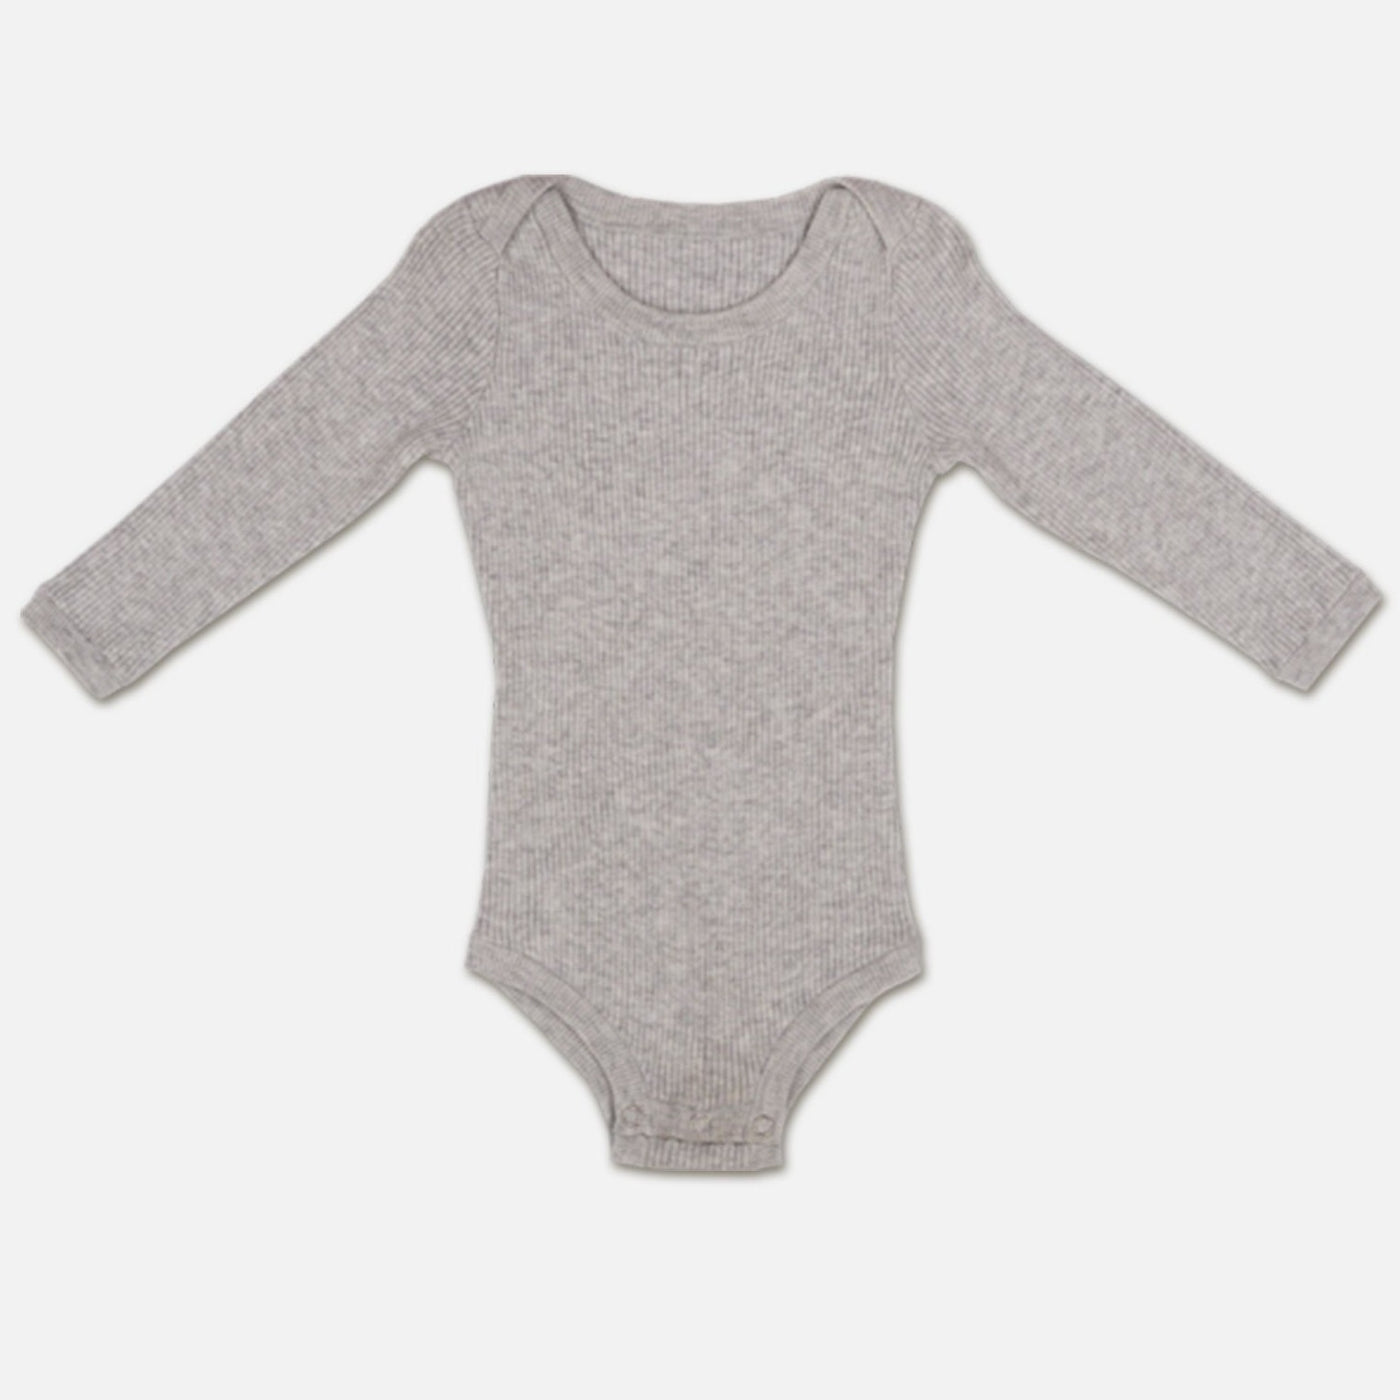 US stockist of Grown grey marle organic cotton ribbed bodysuit/onesie